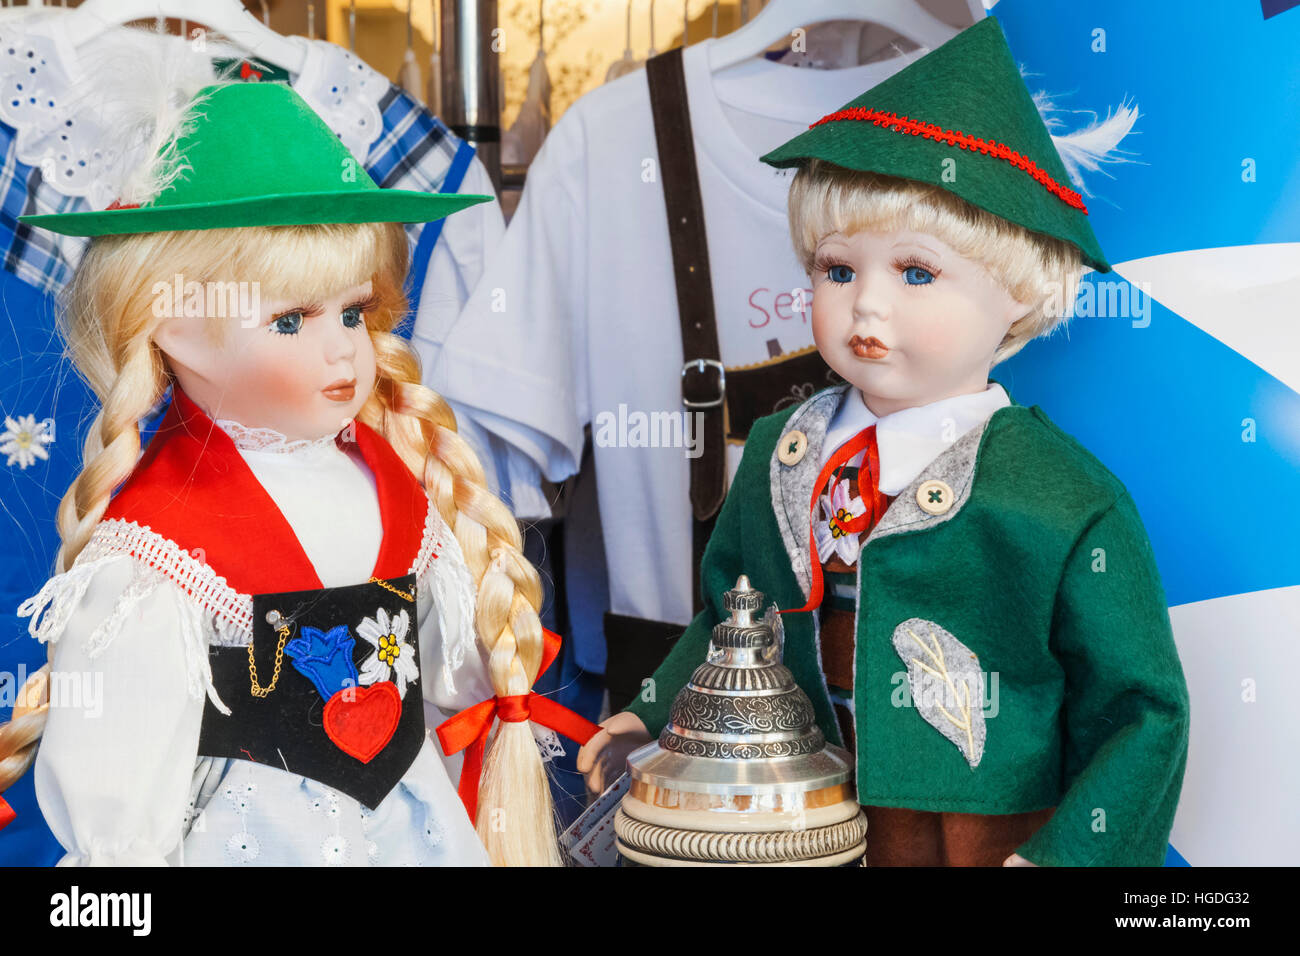 Germany, Bavaria, Munich, Souvenir Shop Window Display of Dolls in Bavarian Costume - Stock Image